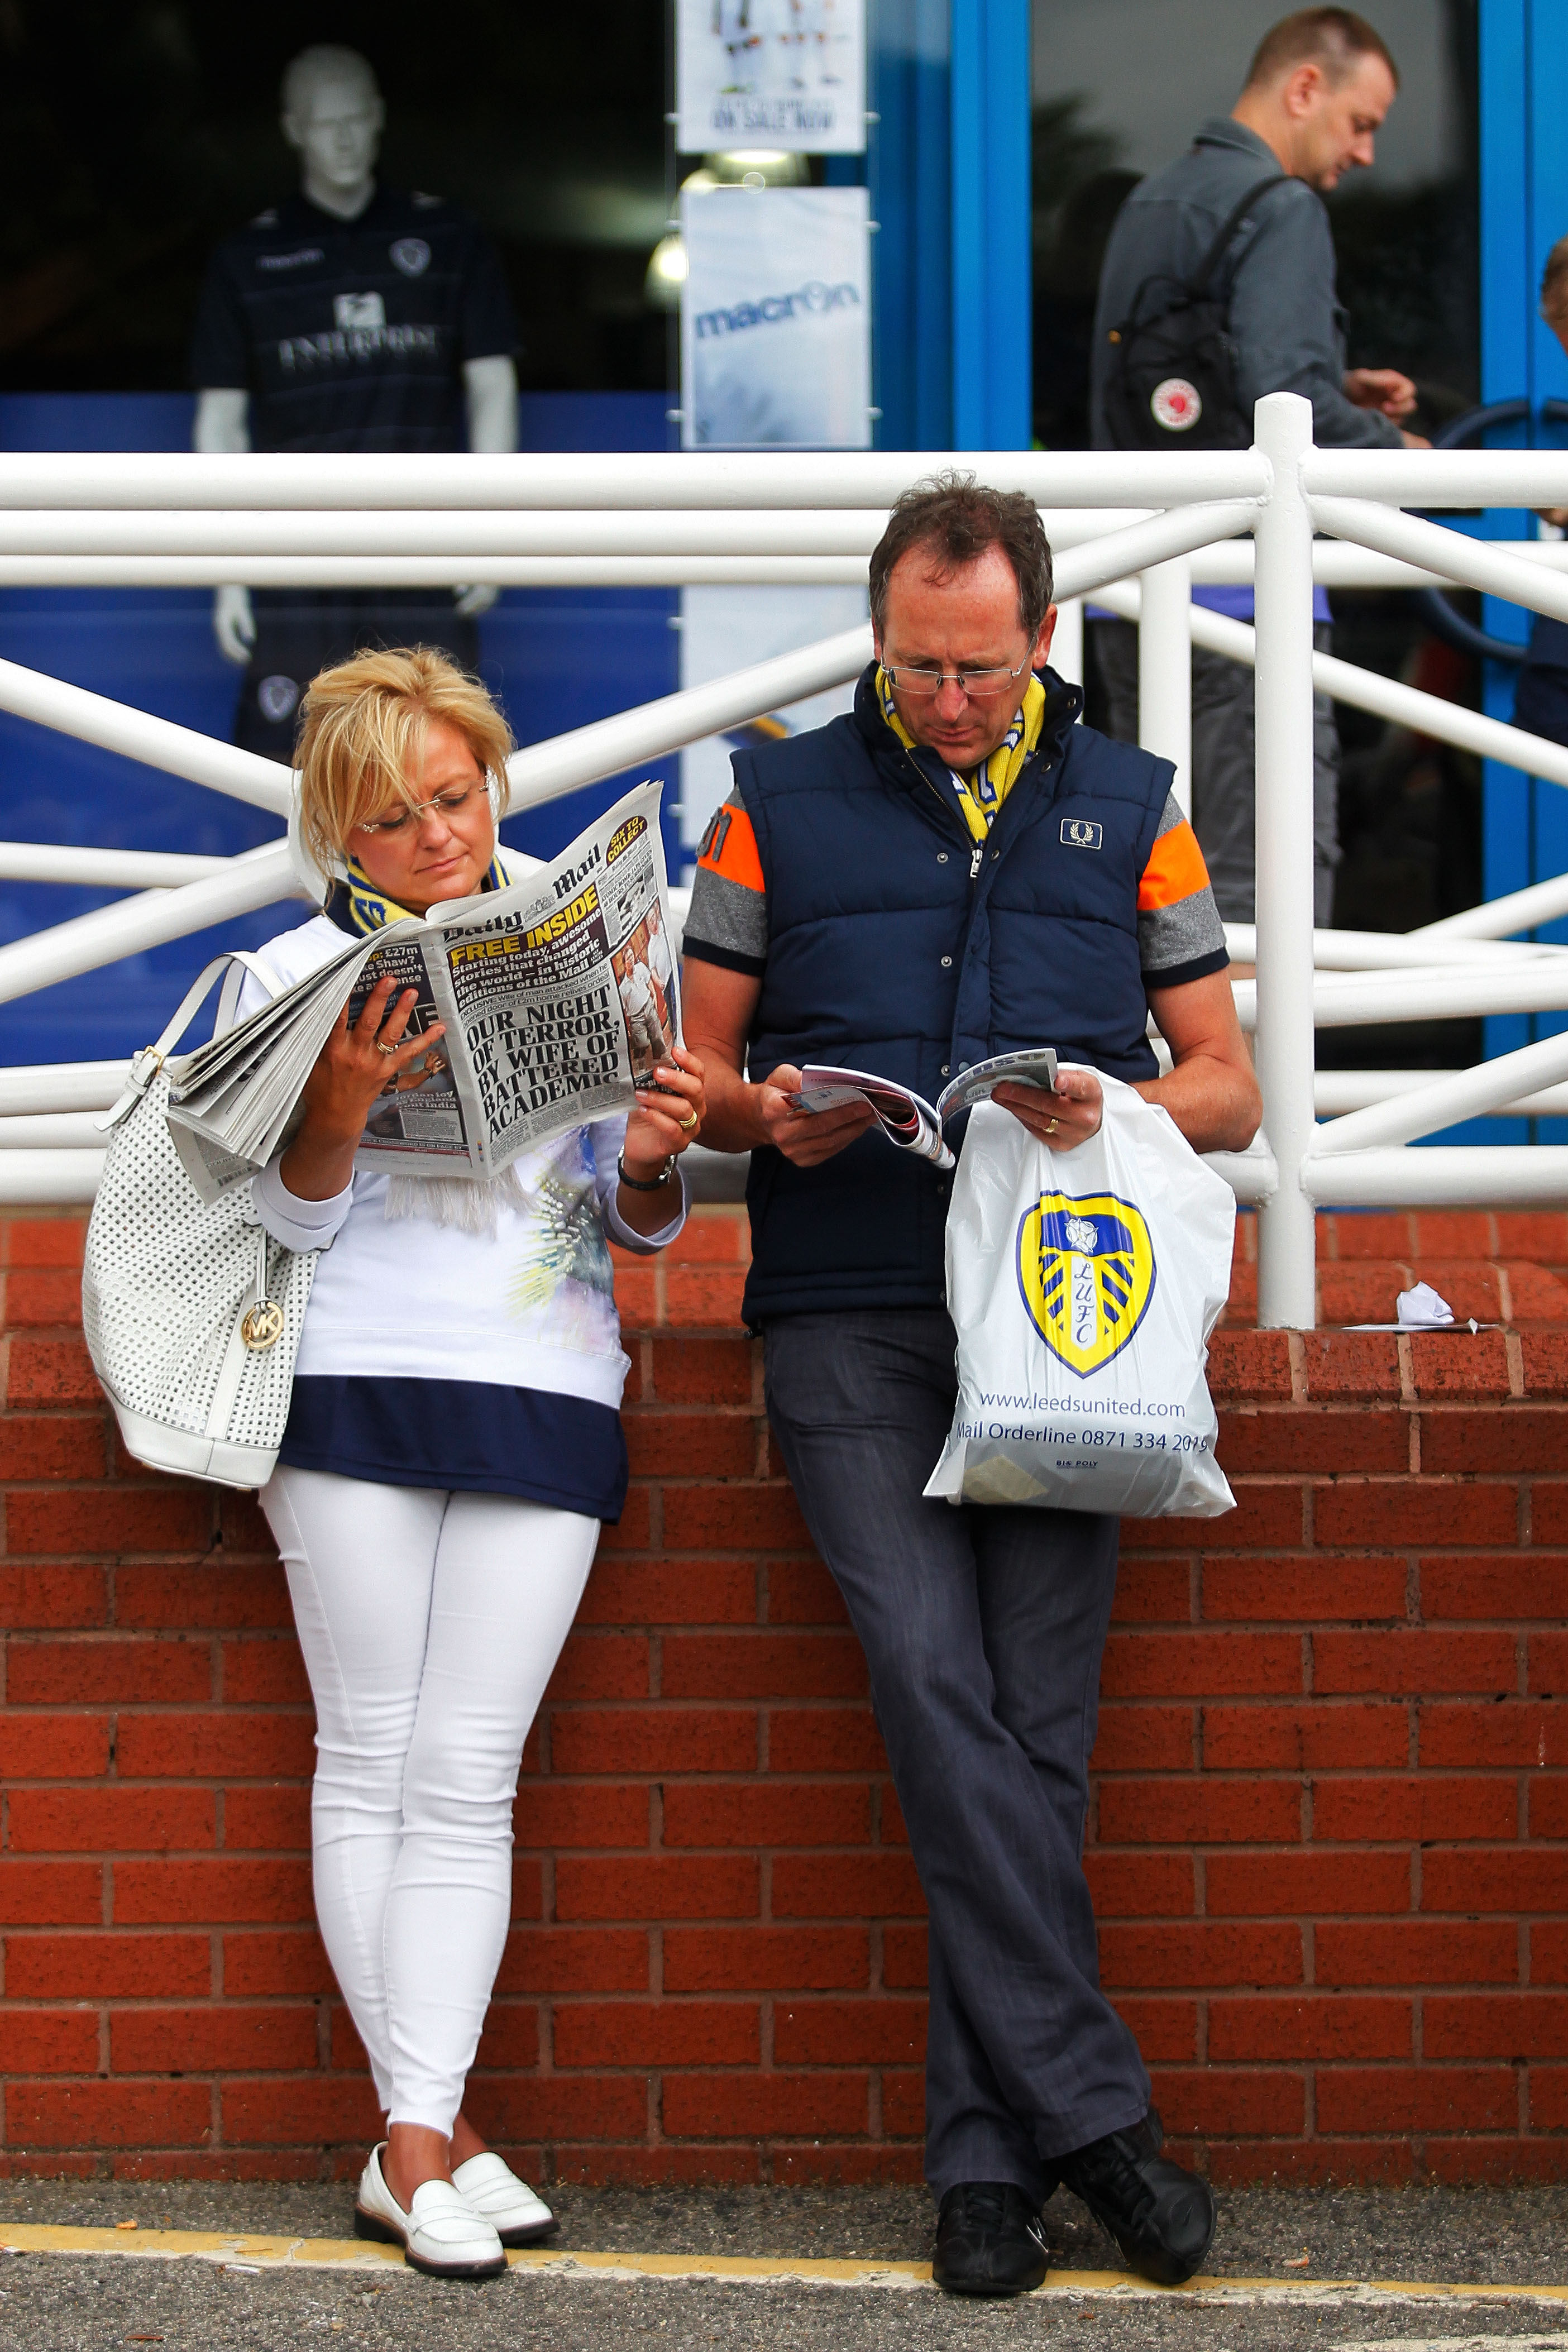 Hopefully the LUFC headline readers in 2017 will be a bit more jubilant.